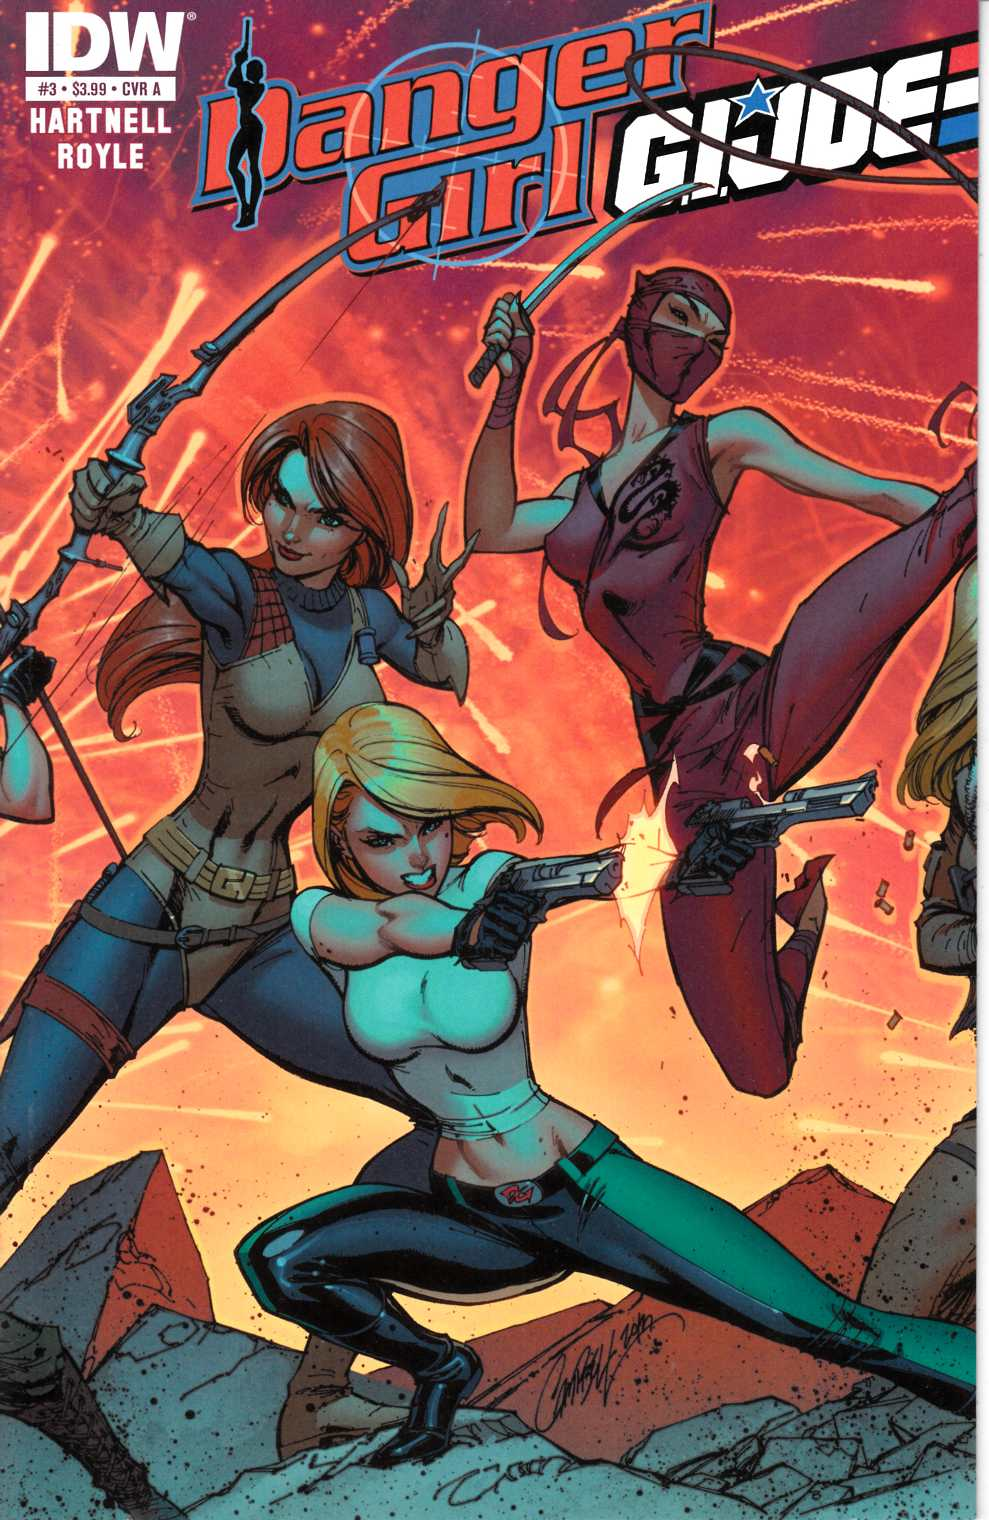 Danger Girl GI Joe #3 Cover A [Comic]